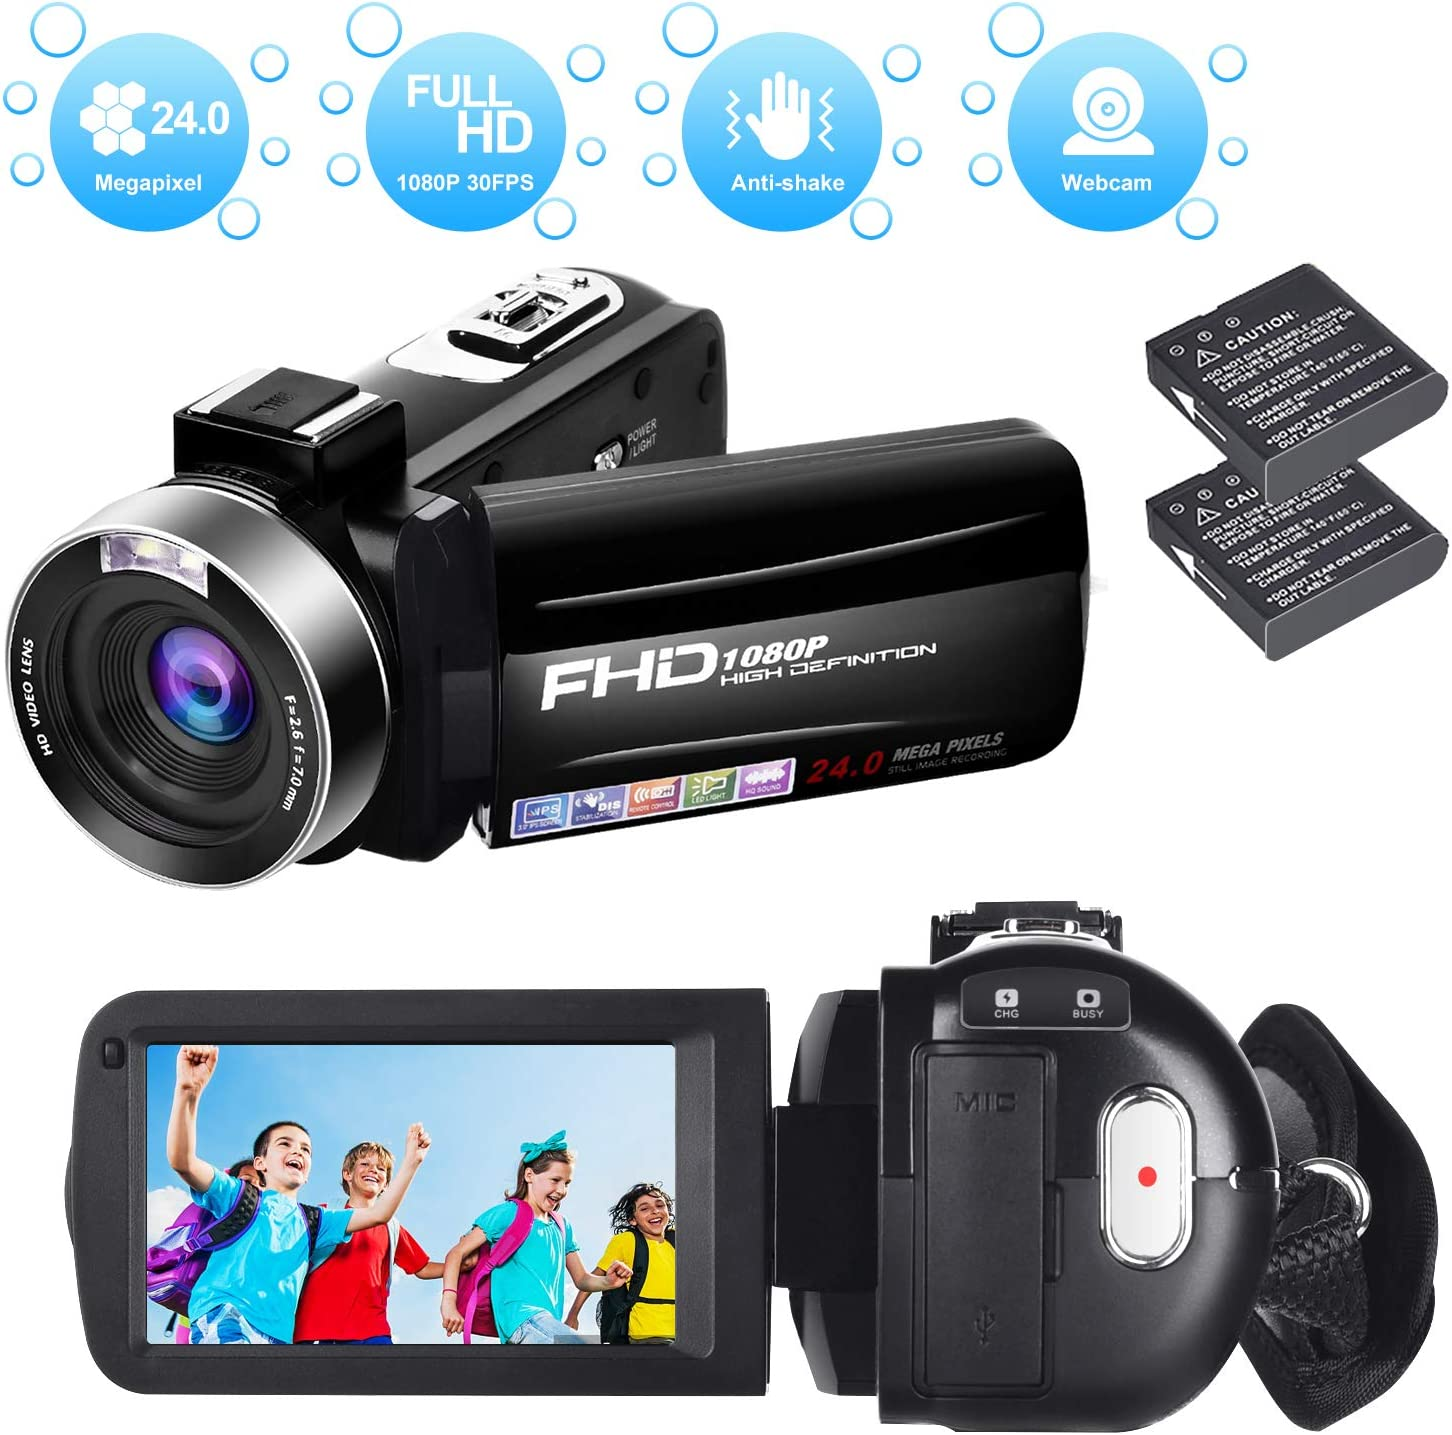 Videocámara Cámara de Video Full HD 1080P 30FPS Digital Videocamara Vlogging de Disparo Continuo de 24.0MP con Control Remoto y 2 Baterías